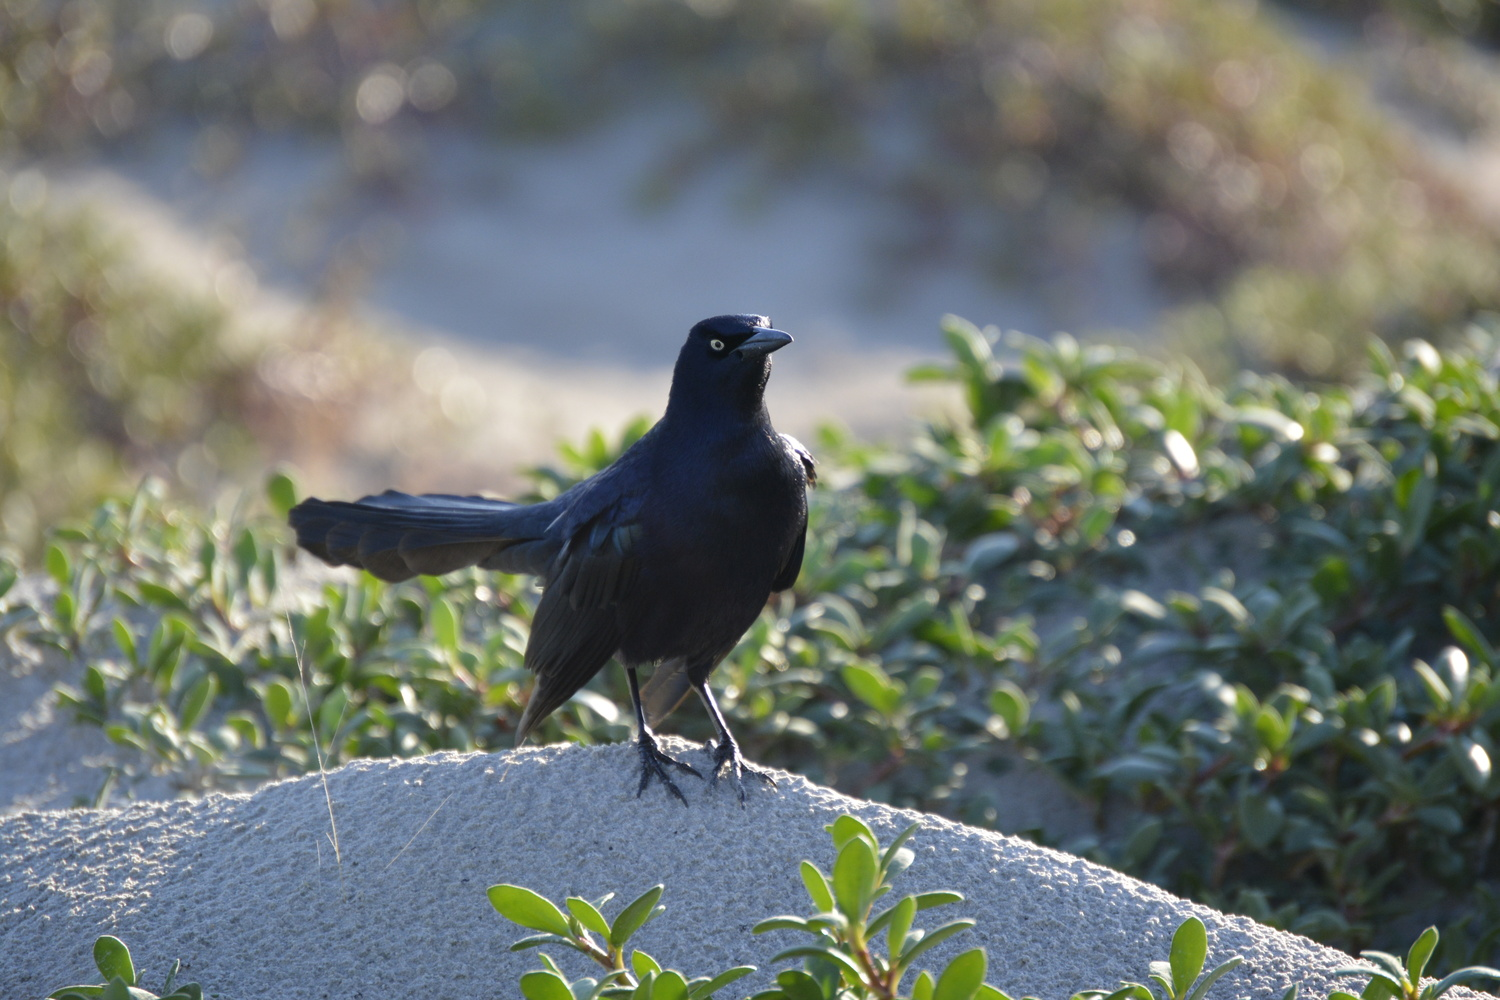 Common Grackle by Robert Bruton